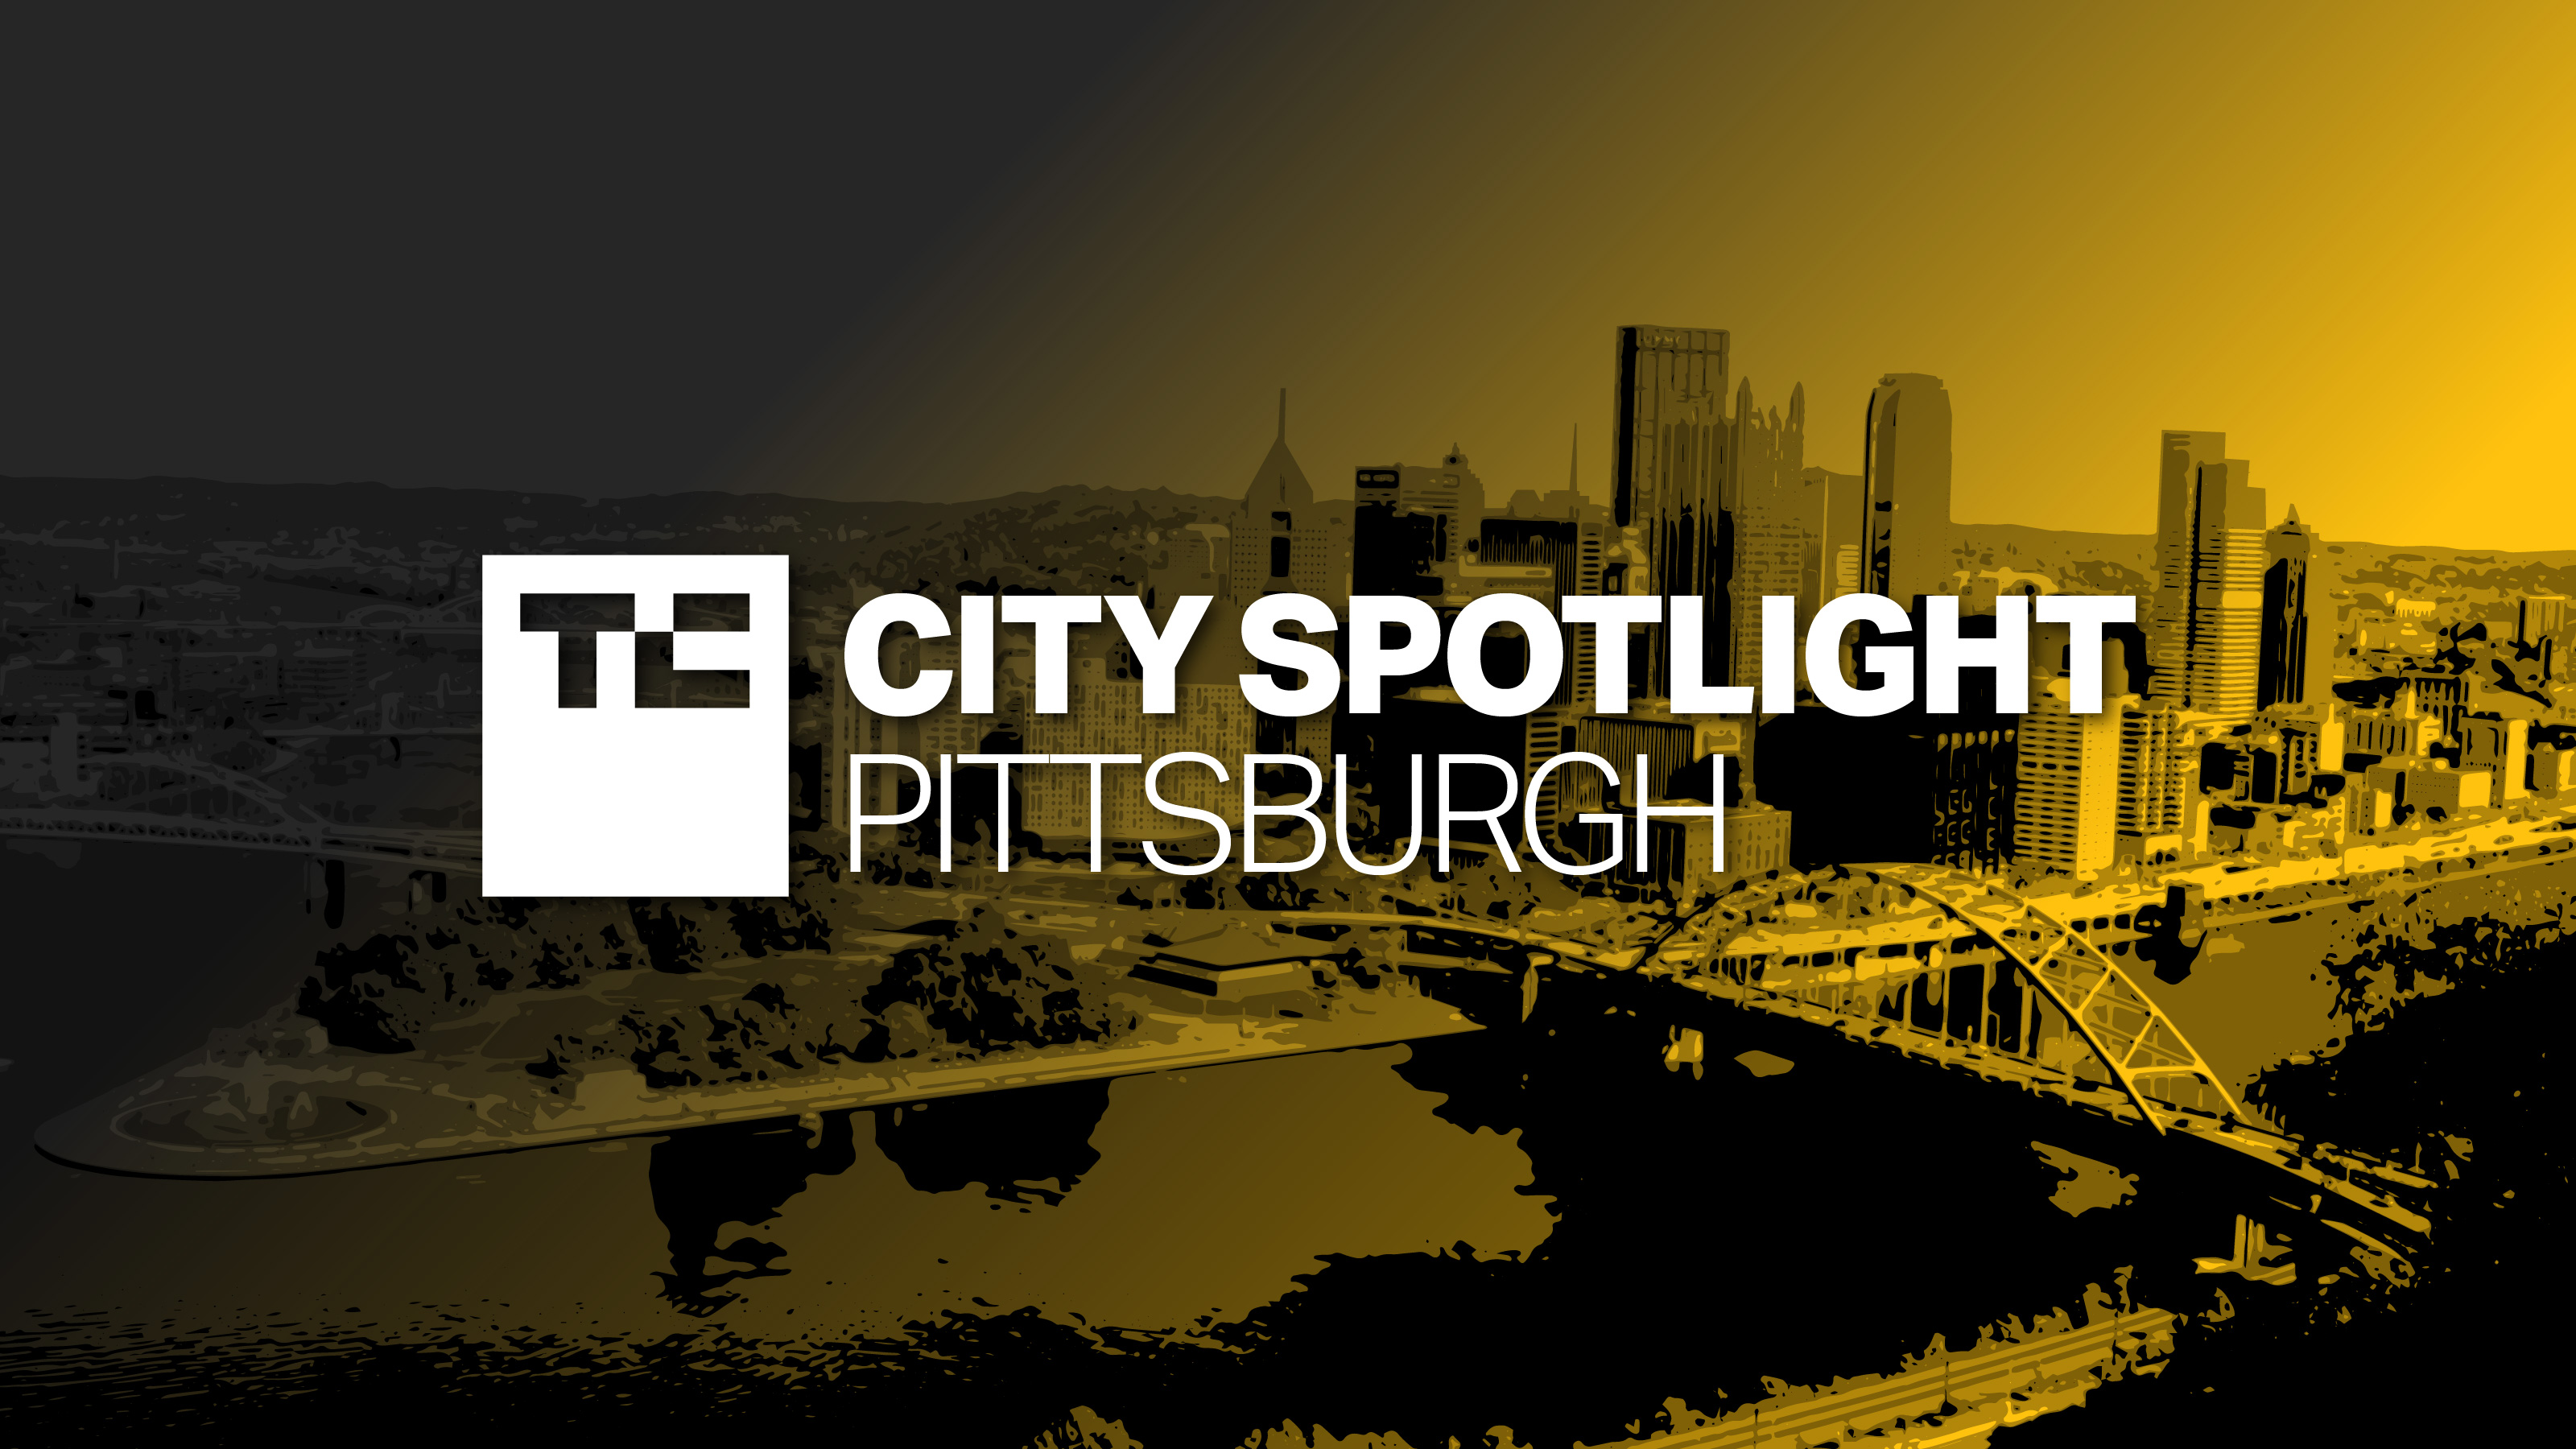 pittsburgh featured SpaceX announces tentative plans to launch first orbital flight next month – TechCrunch